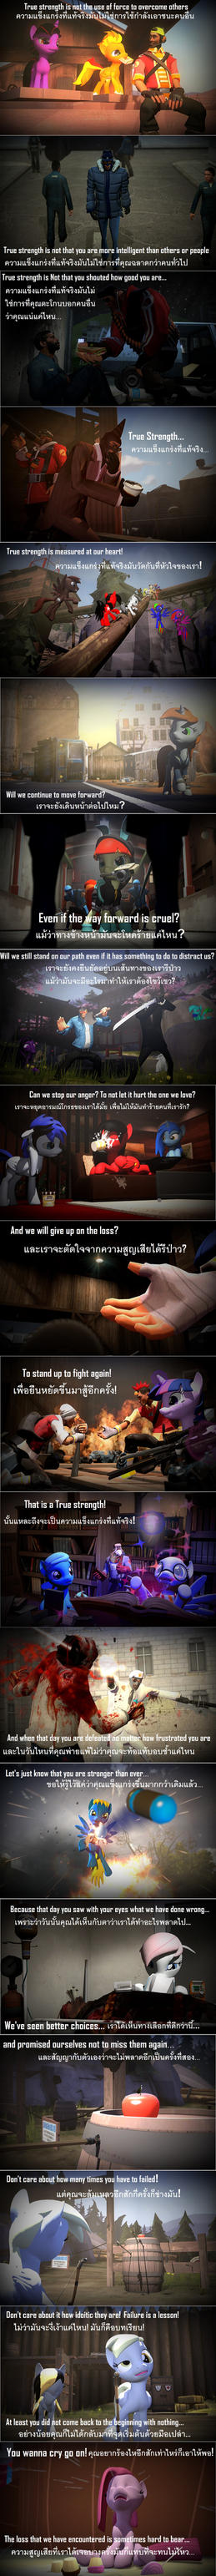 Lesson form Game True strength by pinrobotkit